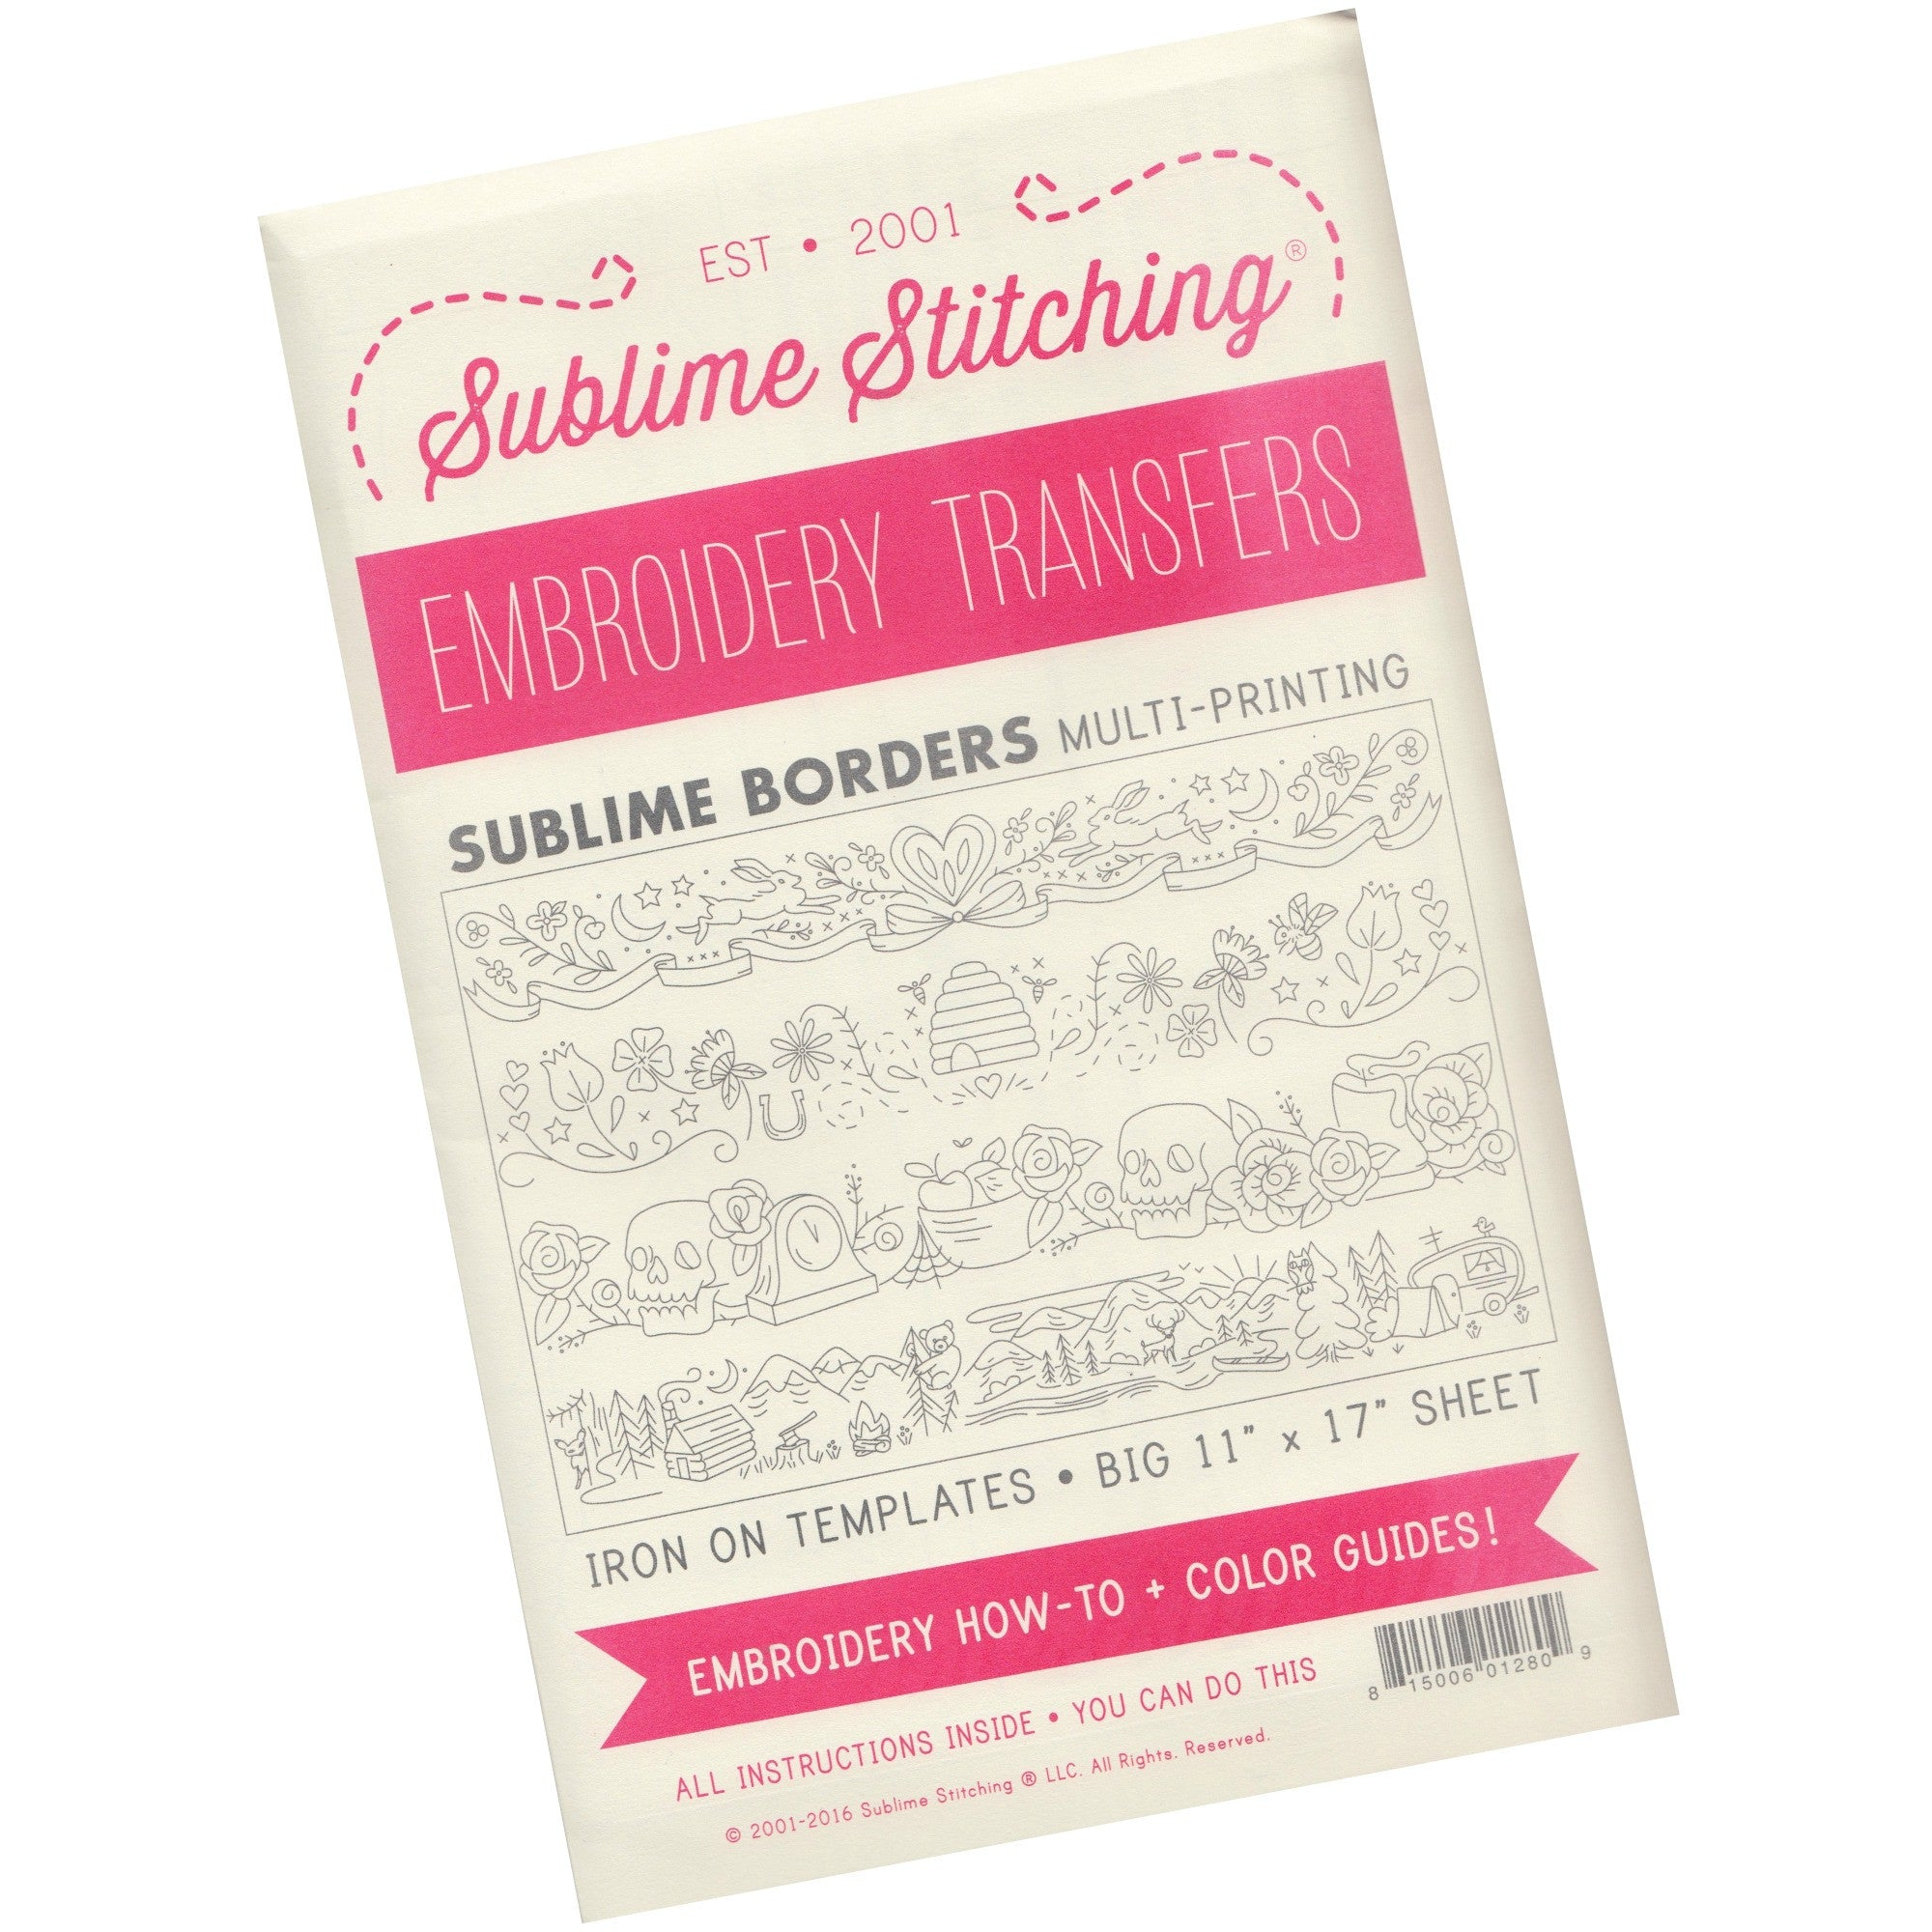 Sublime Stitching Embroidery Patterns - Sublime Borders Patterns - Snuggly Monkey